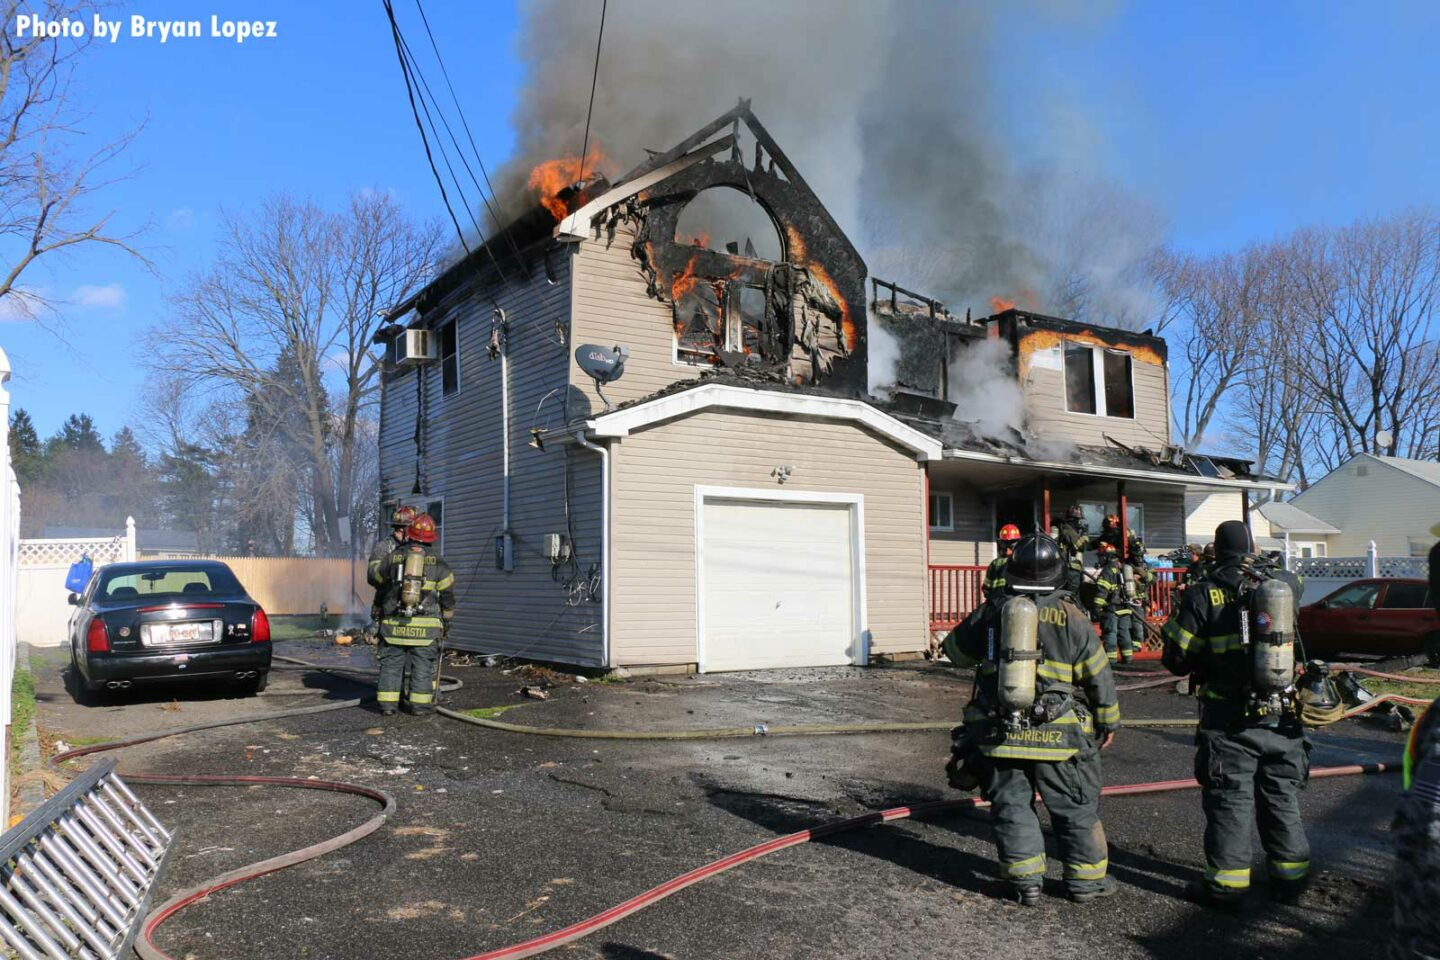 Another view of the home, with flames visible and firefighters at work